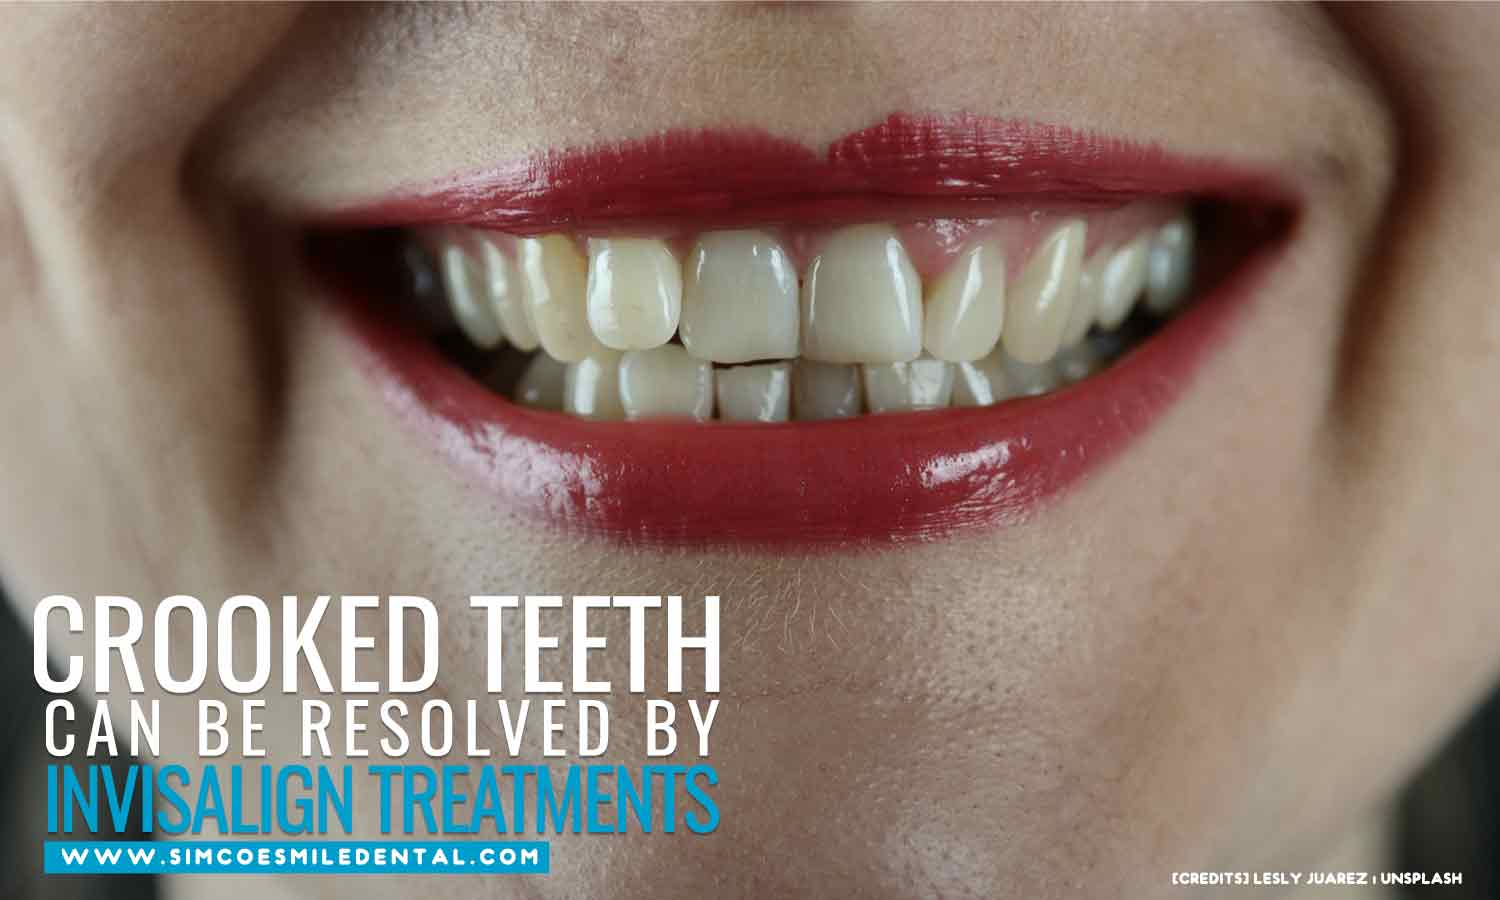 Crooked-teeth-can-be-resolved-by-Invisalign-treatments What to Expect From Invisalign Treatment